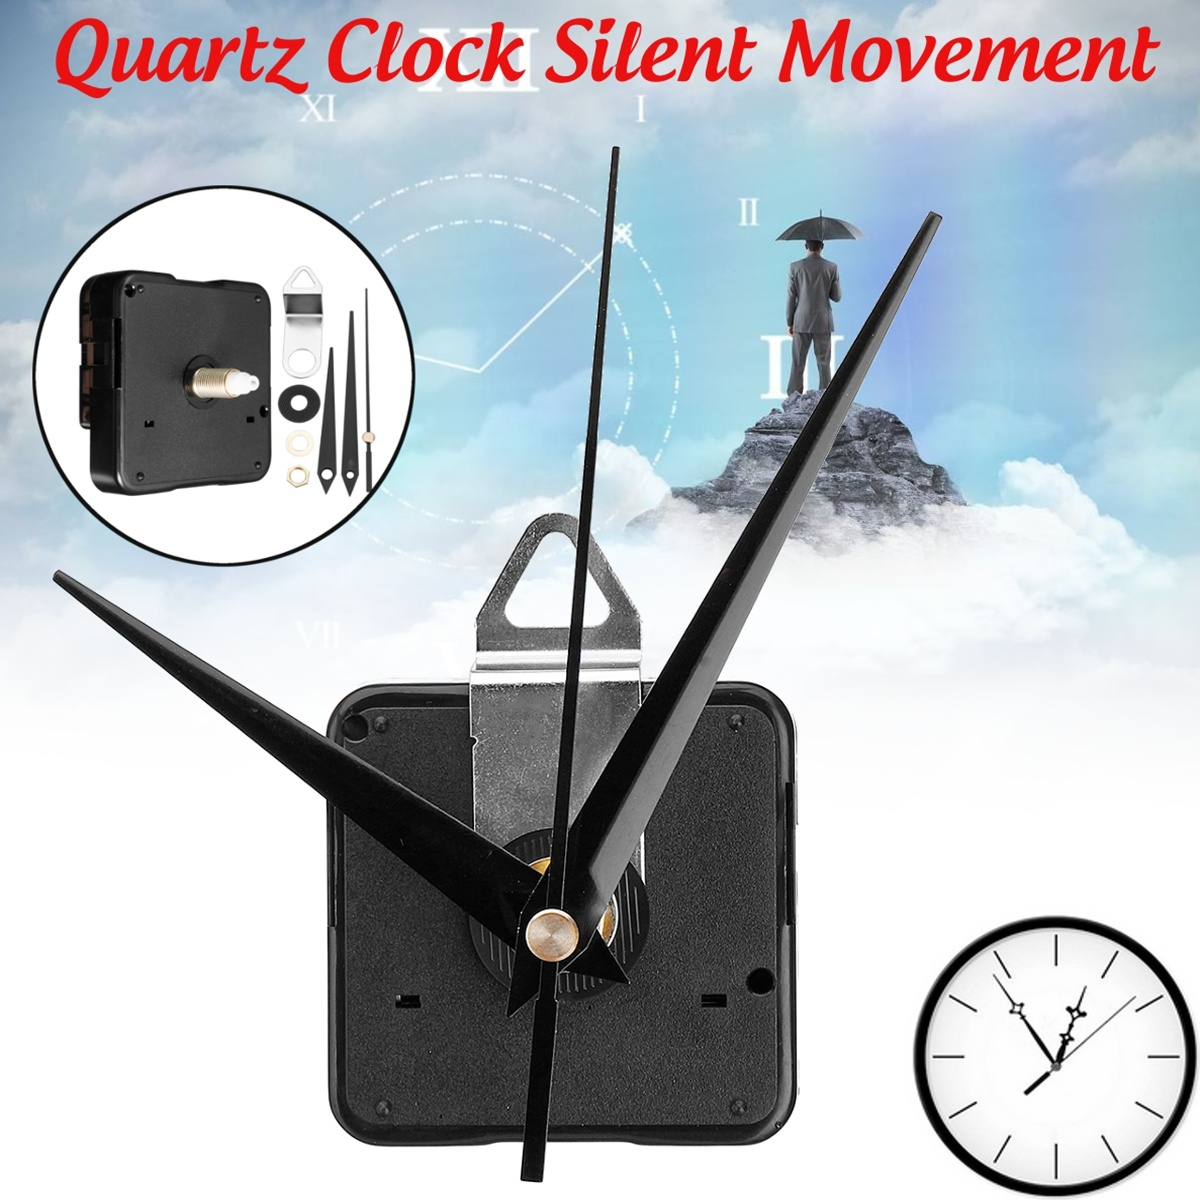 1/2x New  High Torque Quartz Controlled Silent DIY Wall Clock Movement Motor Mechanism Hour Minute Hands Fitting